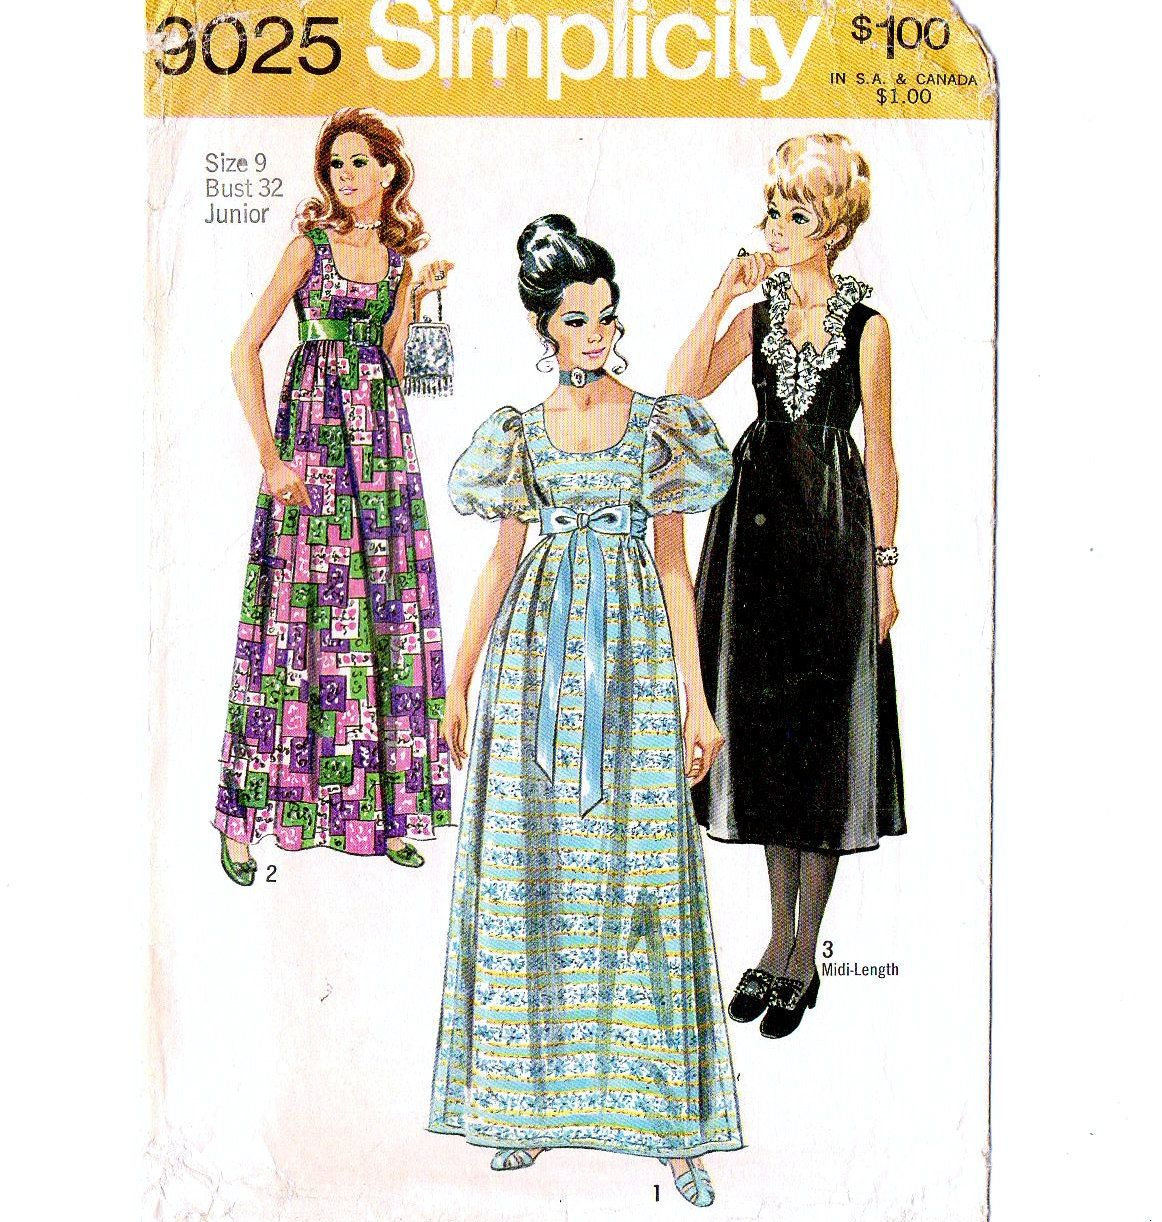 Simplicity 9025 Miss Evening Dress 70s Vintage Sewing Pattern Size 9 Bust 32 Prom Gown High Waist Evening Dress Patterns Vintage Outfits Vintage 1950s Dresses [ 1222 x 1162 Pixel ]